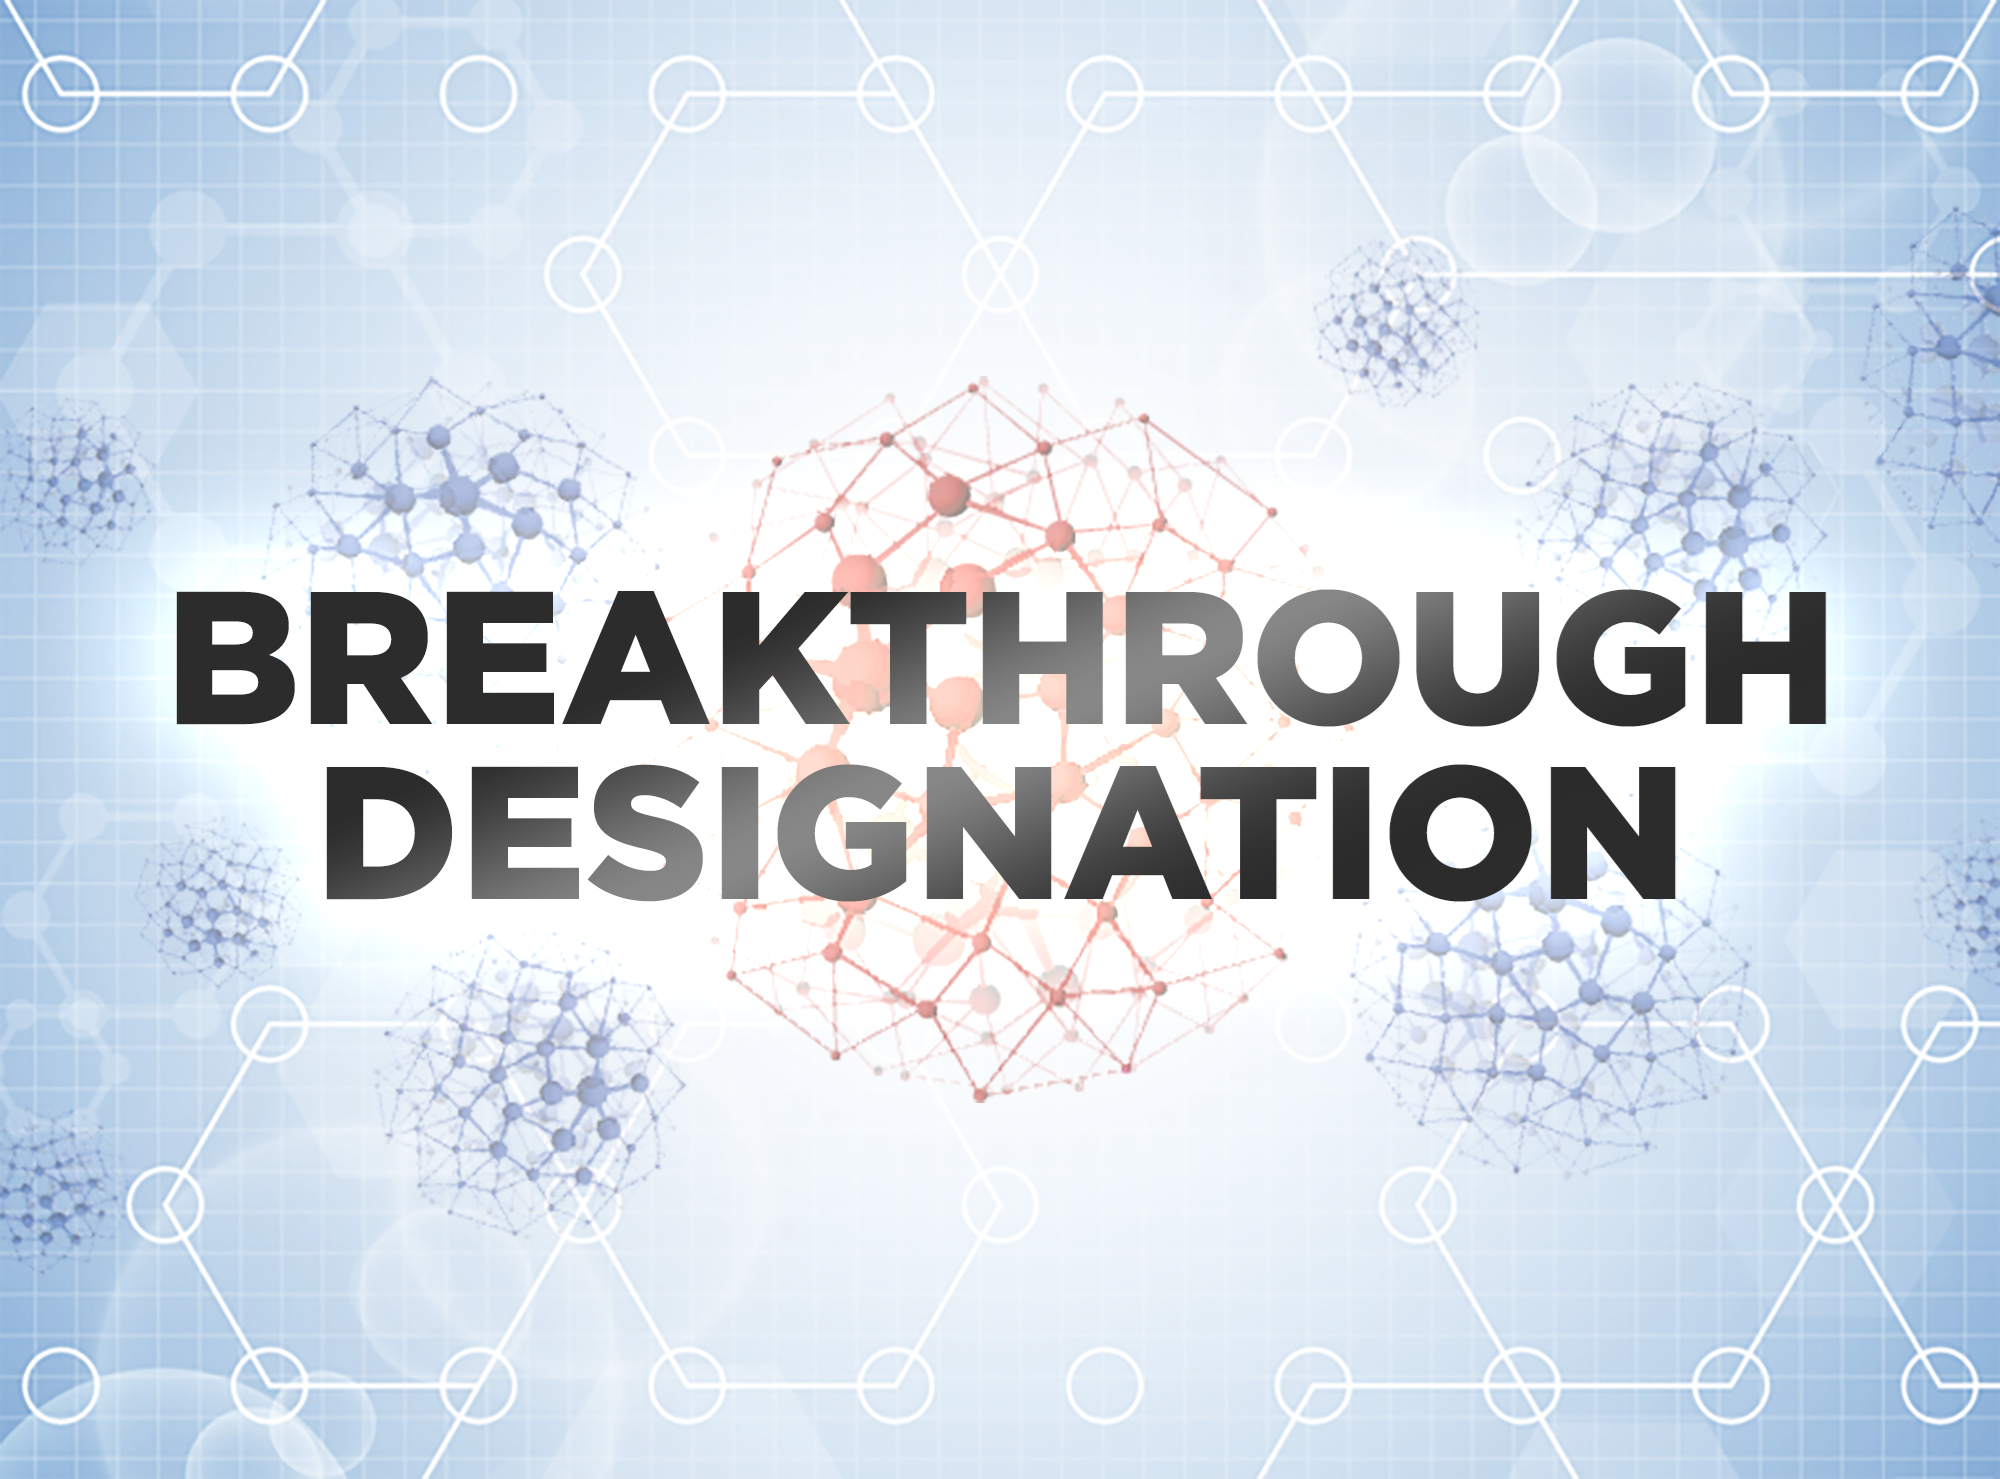 Illumina's TruSight Oncology 500 next-generation sequencing assay has been assigned a breakthrough device status by the FDA.